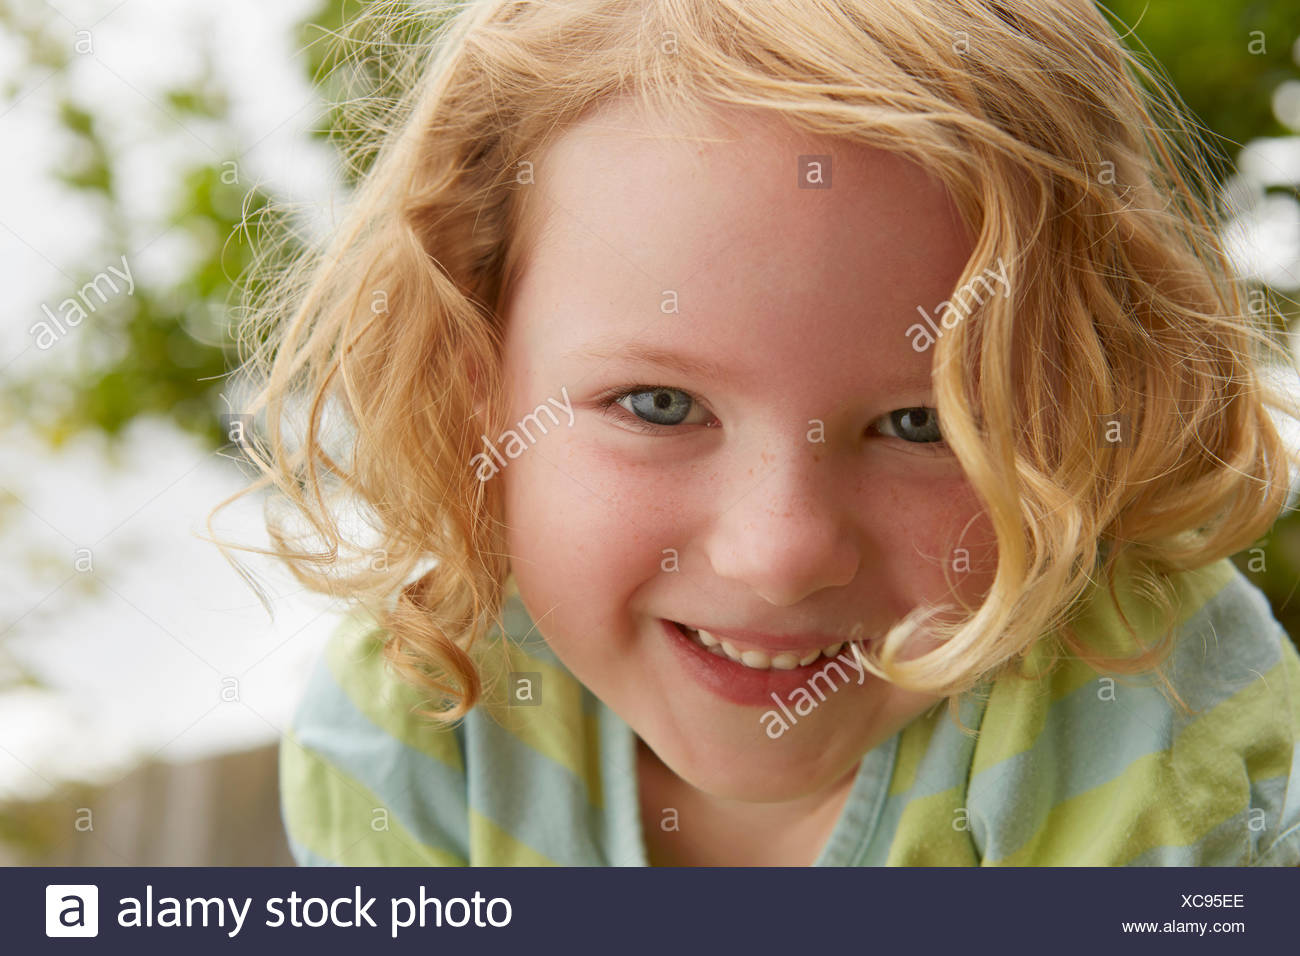 Low angle close up portrait of cute girl - Stock Image